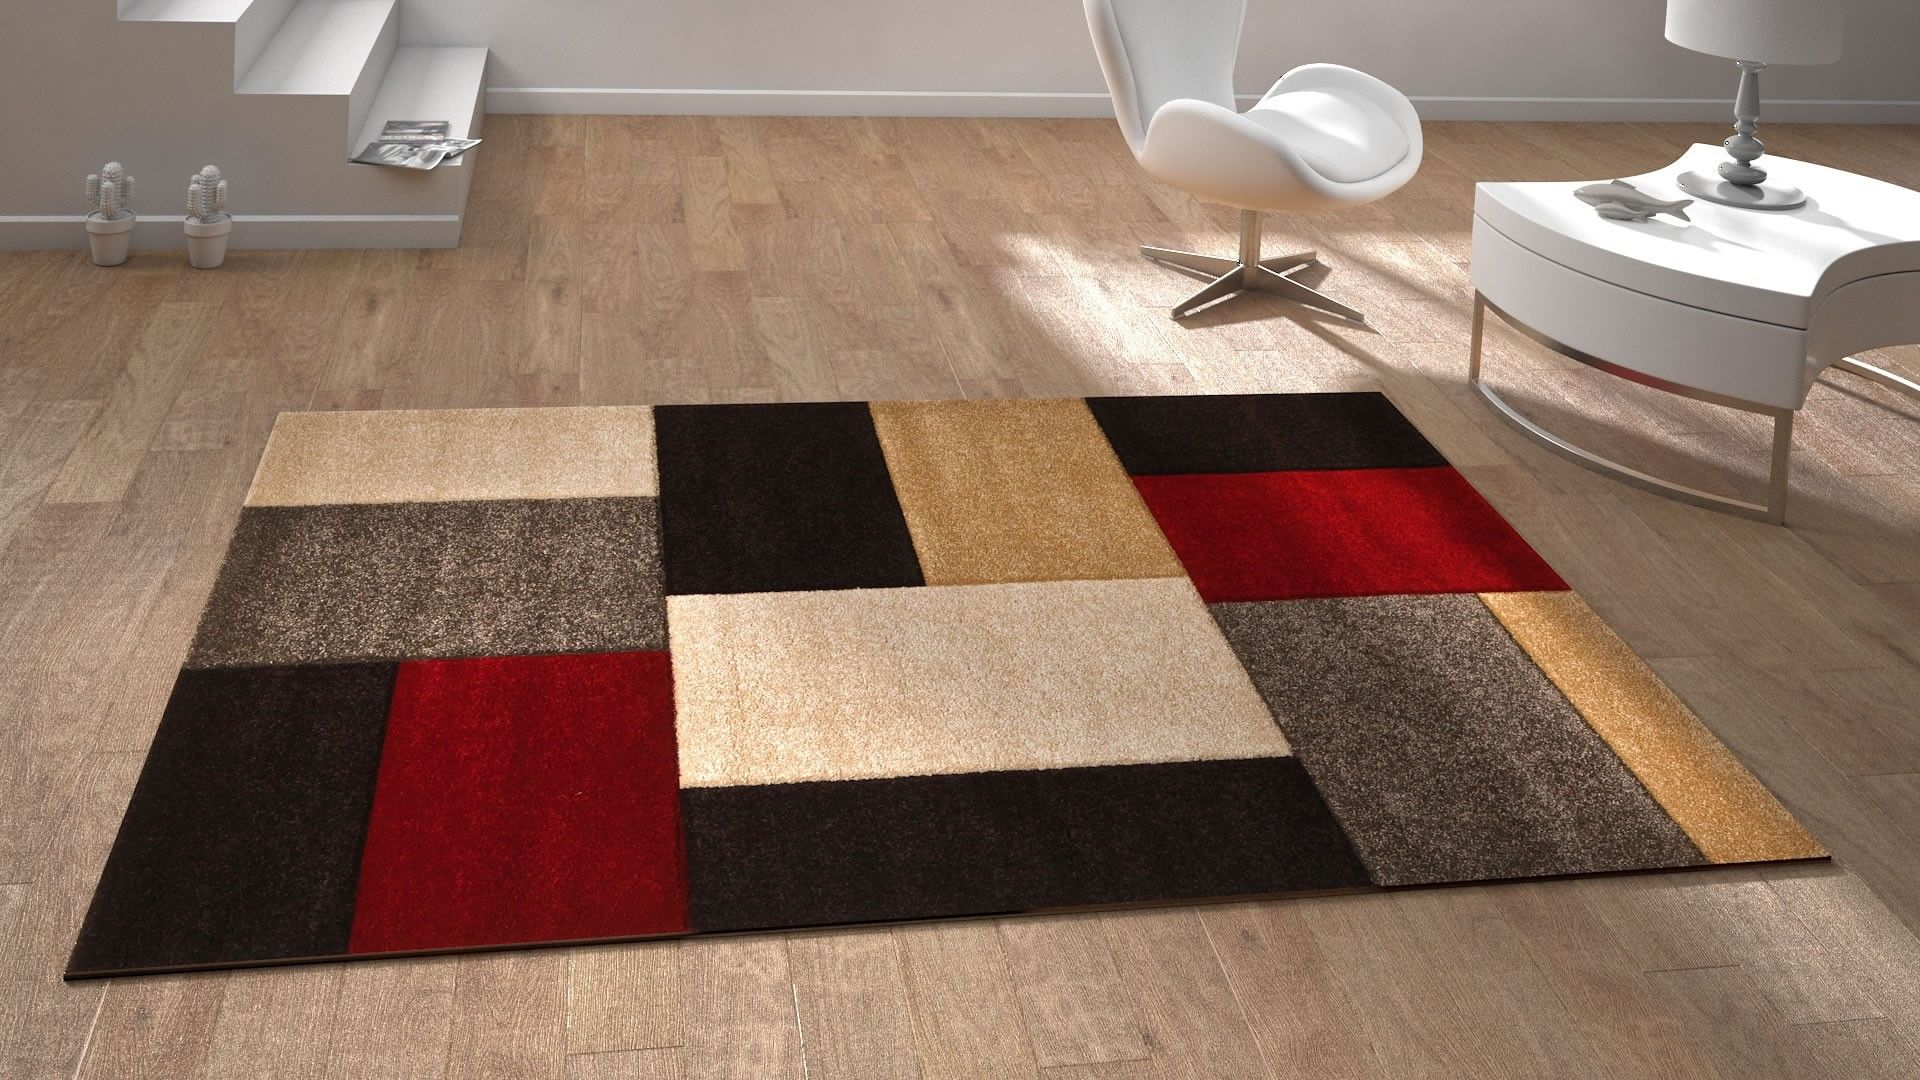 Tapis Contemporain Pablo Saint Maclou Contemporary Rug Decor Home Decor